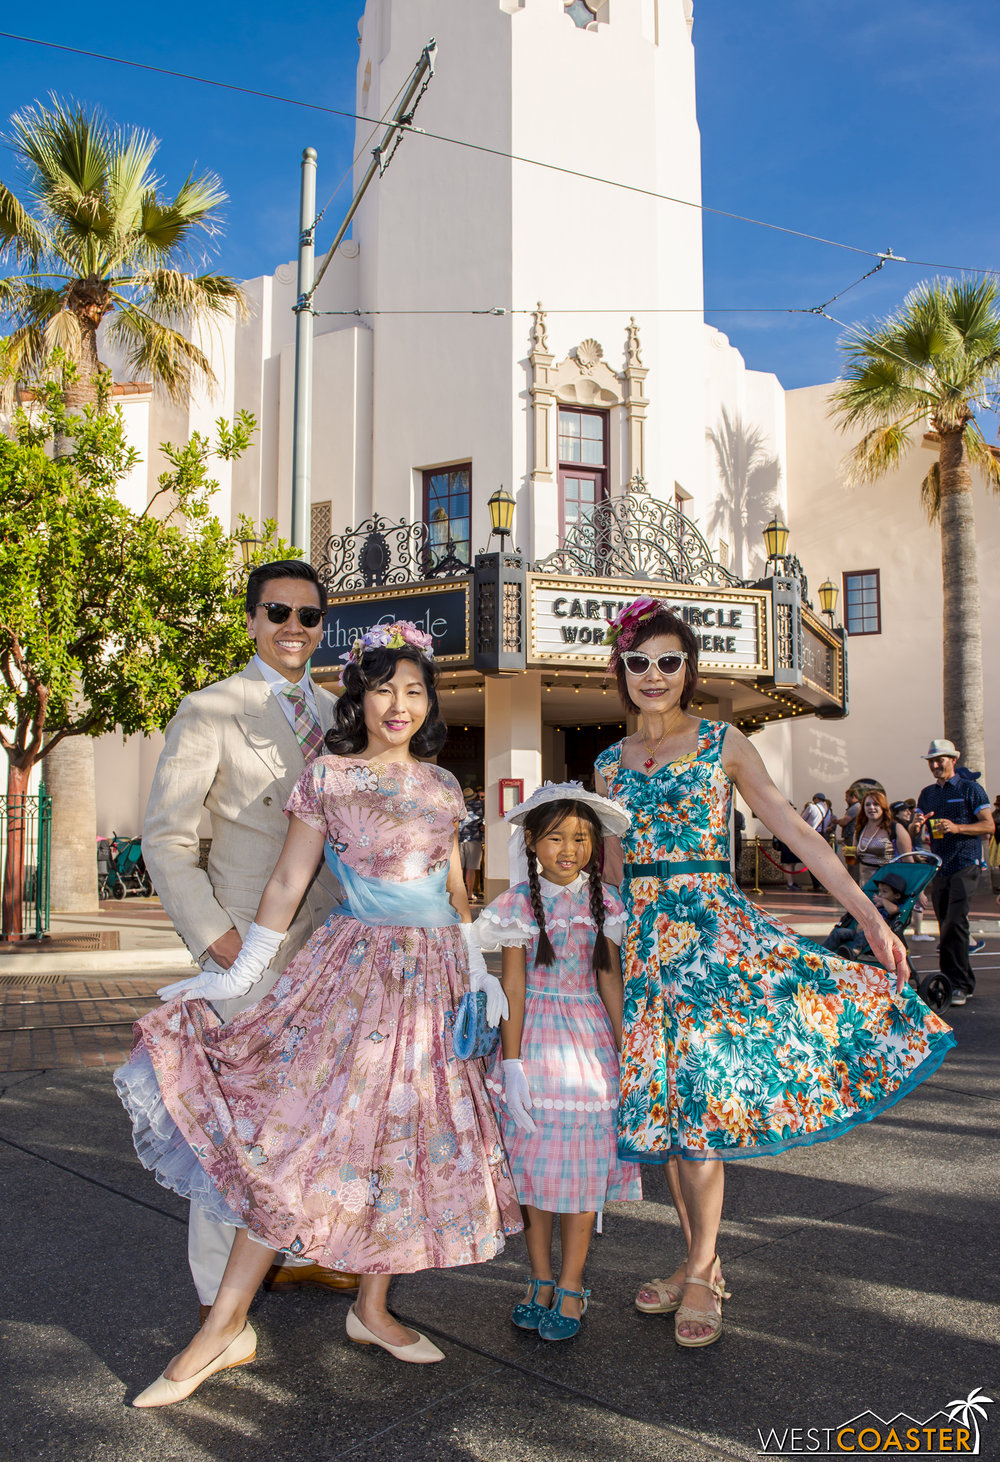 And it's super adorable when Dapper Day is an entire family affair, with multiple generations getting into the act.